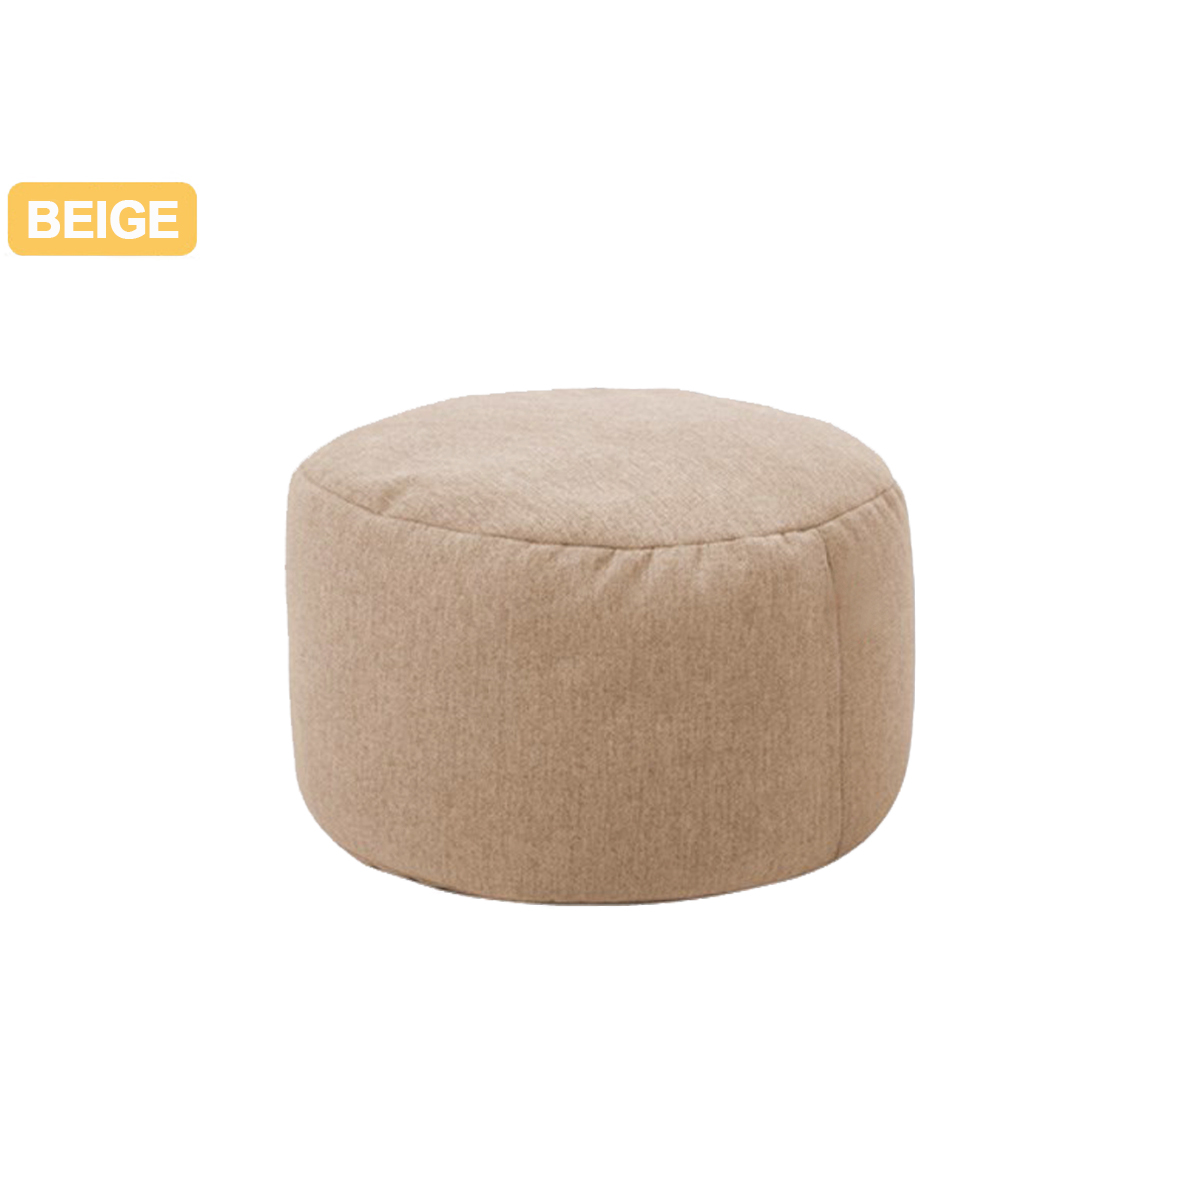 Solid Color Chair Cover Beanbag Sofas Without Filler Small Round Lazy BeanBag Sofa Cover Waterproof Stuffed Storage Toy Bean Bag